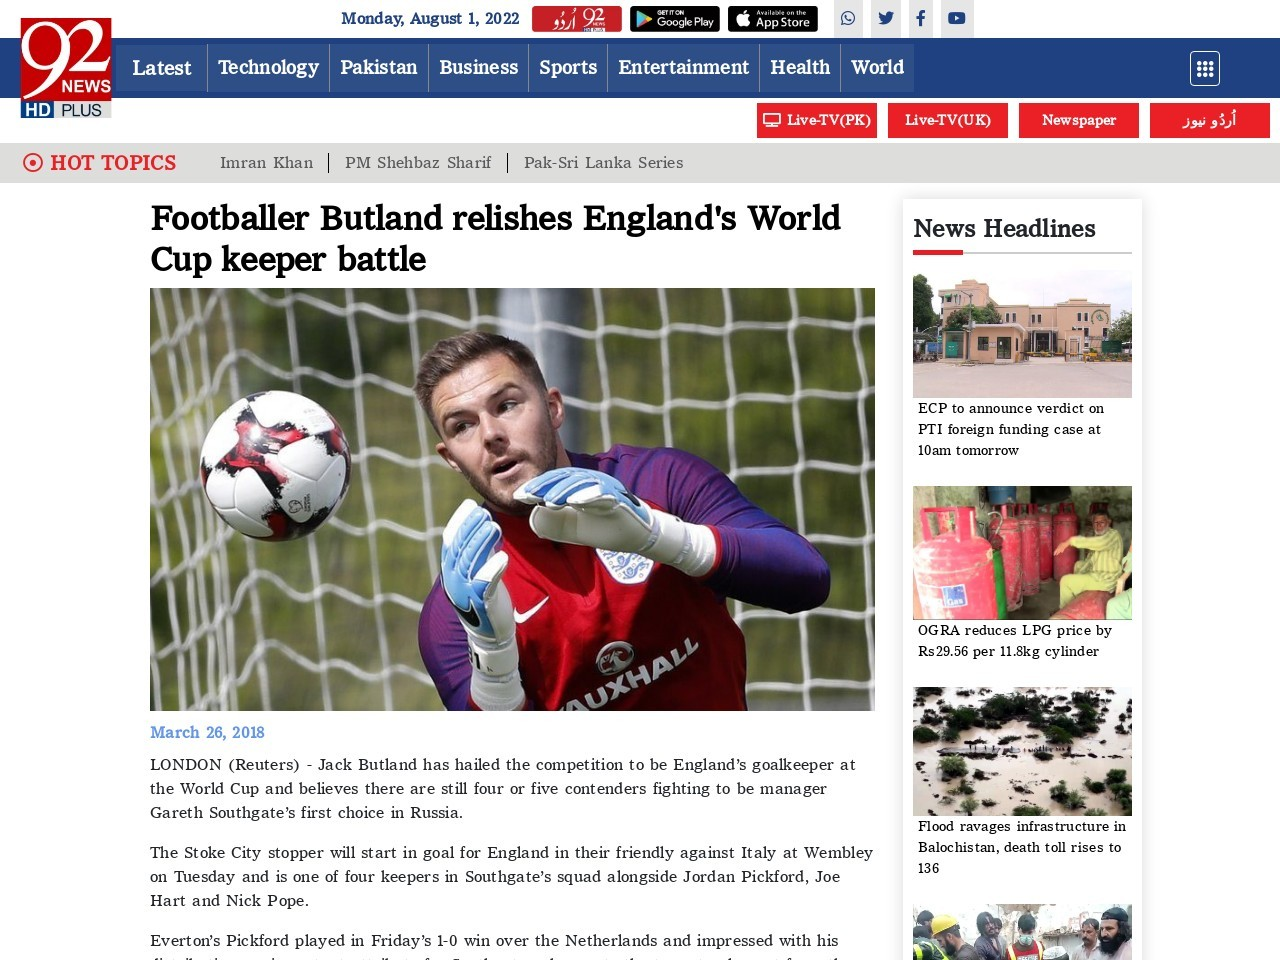 Footballer Butland relishes England's World Cup keeper battle